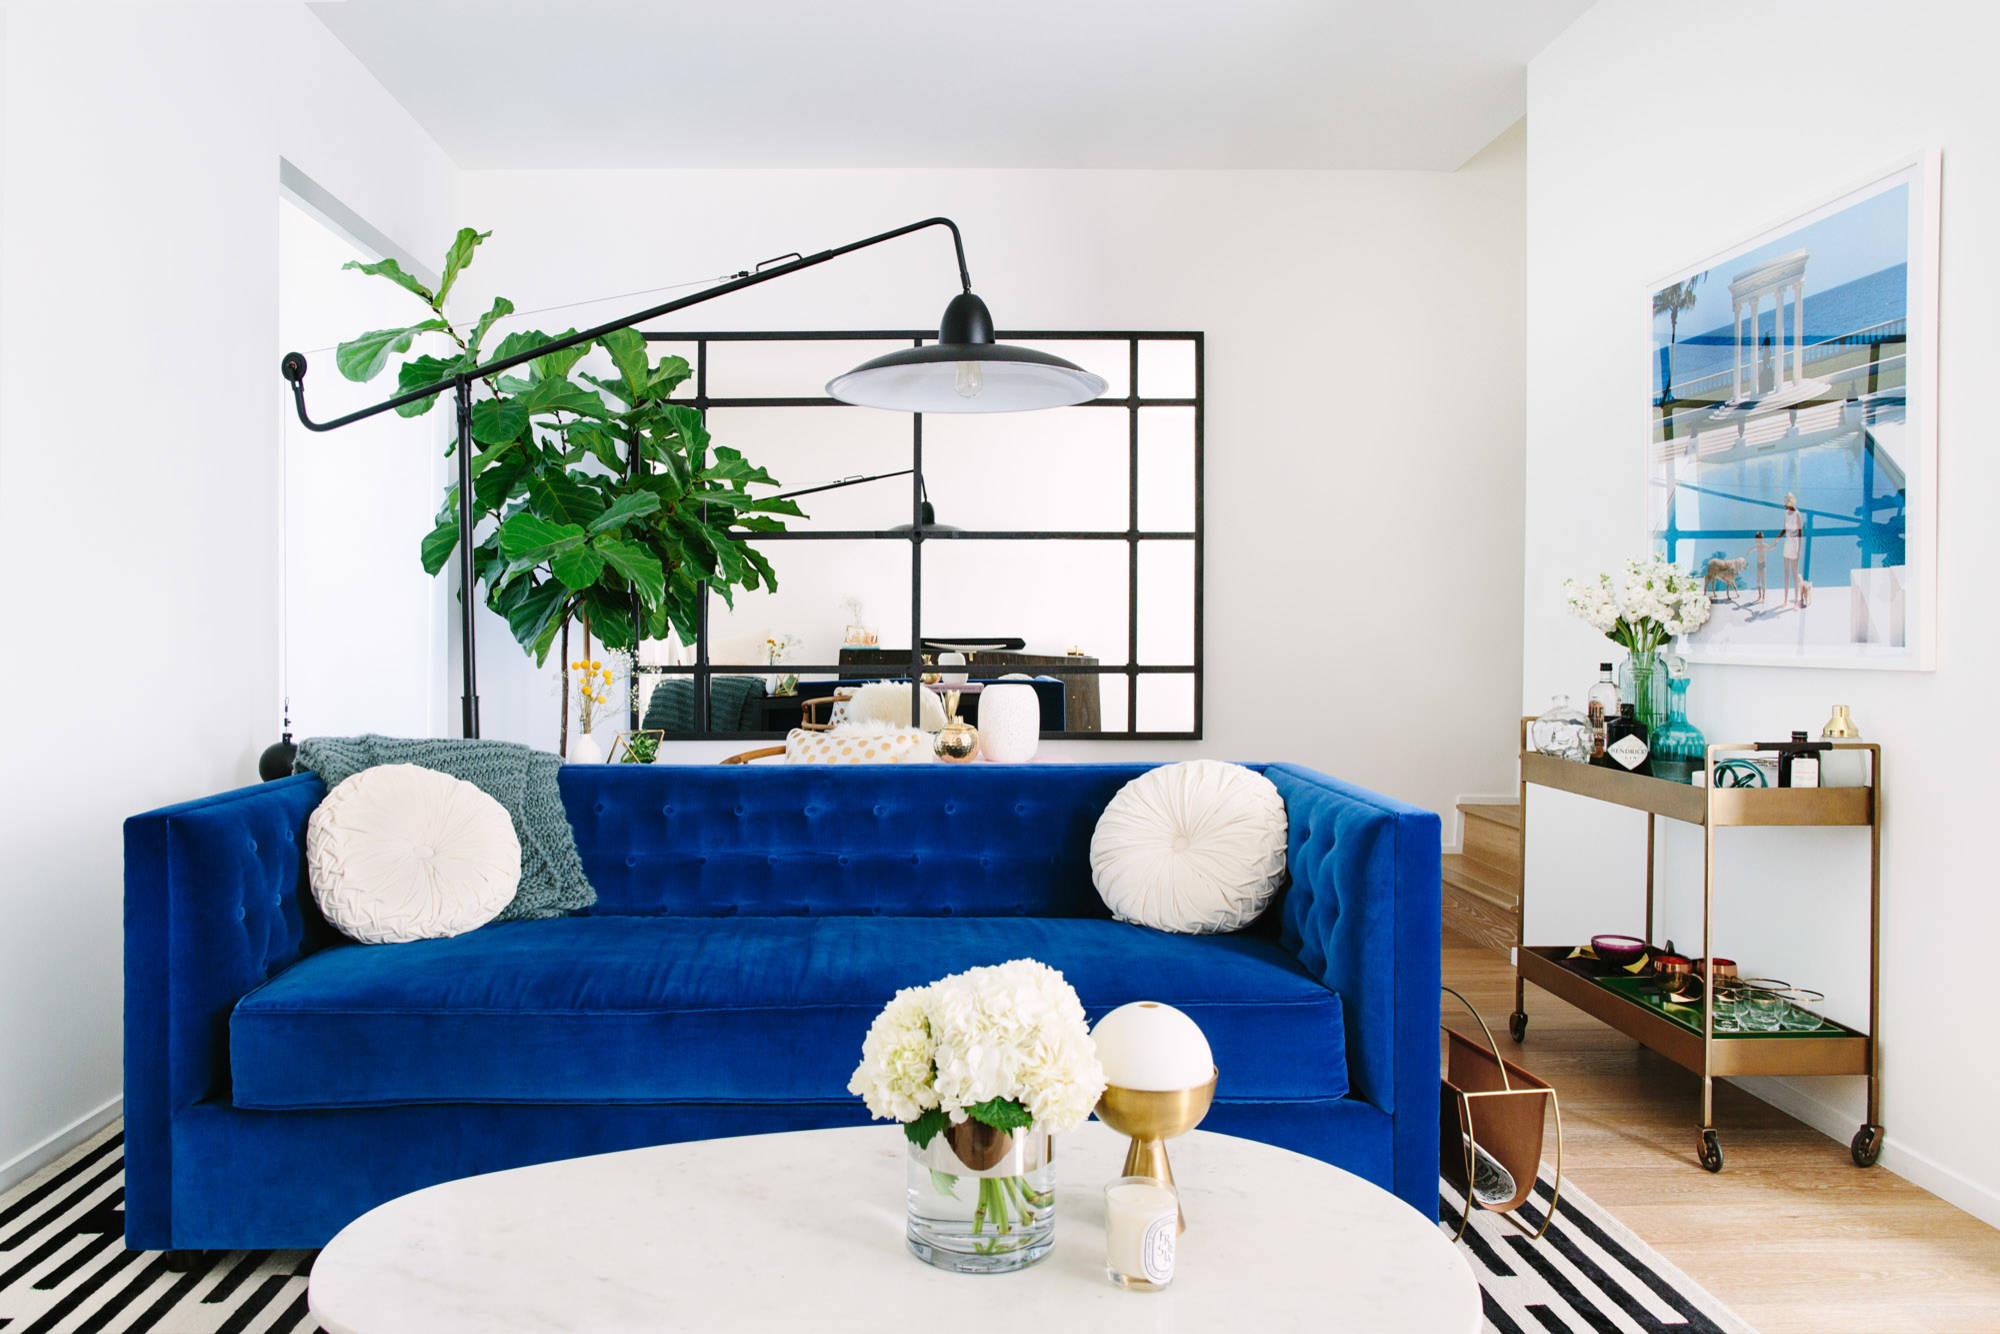 10 Décor Ideas To Go With An On Trend Blue Velvet Sofa Houzz Uk